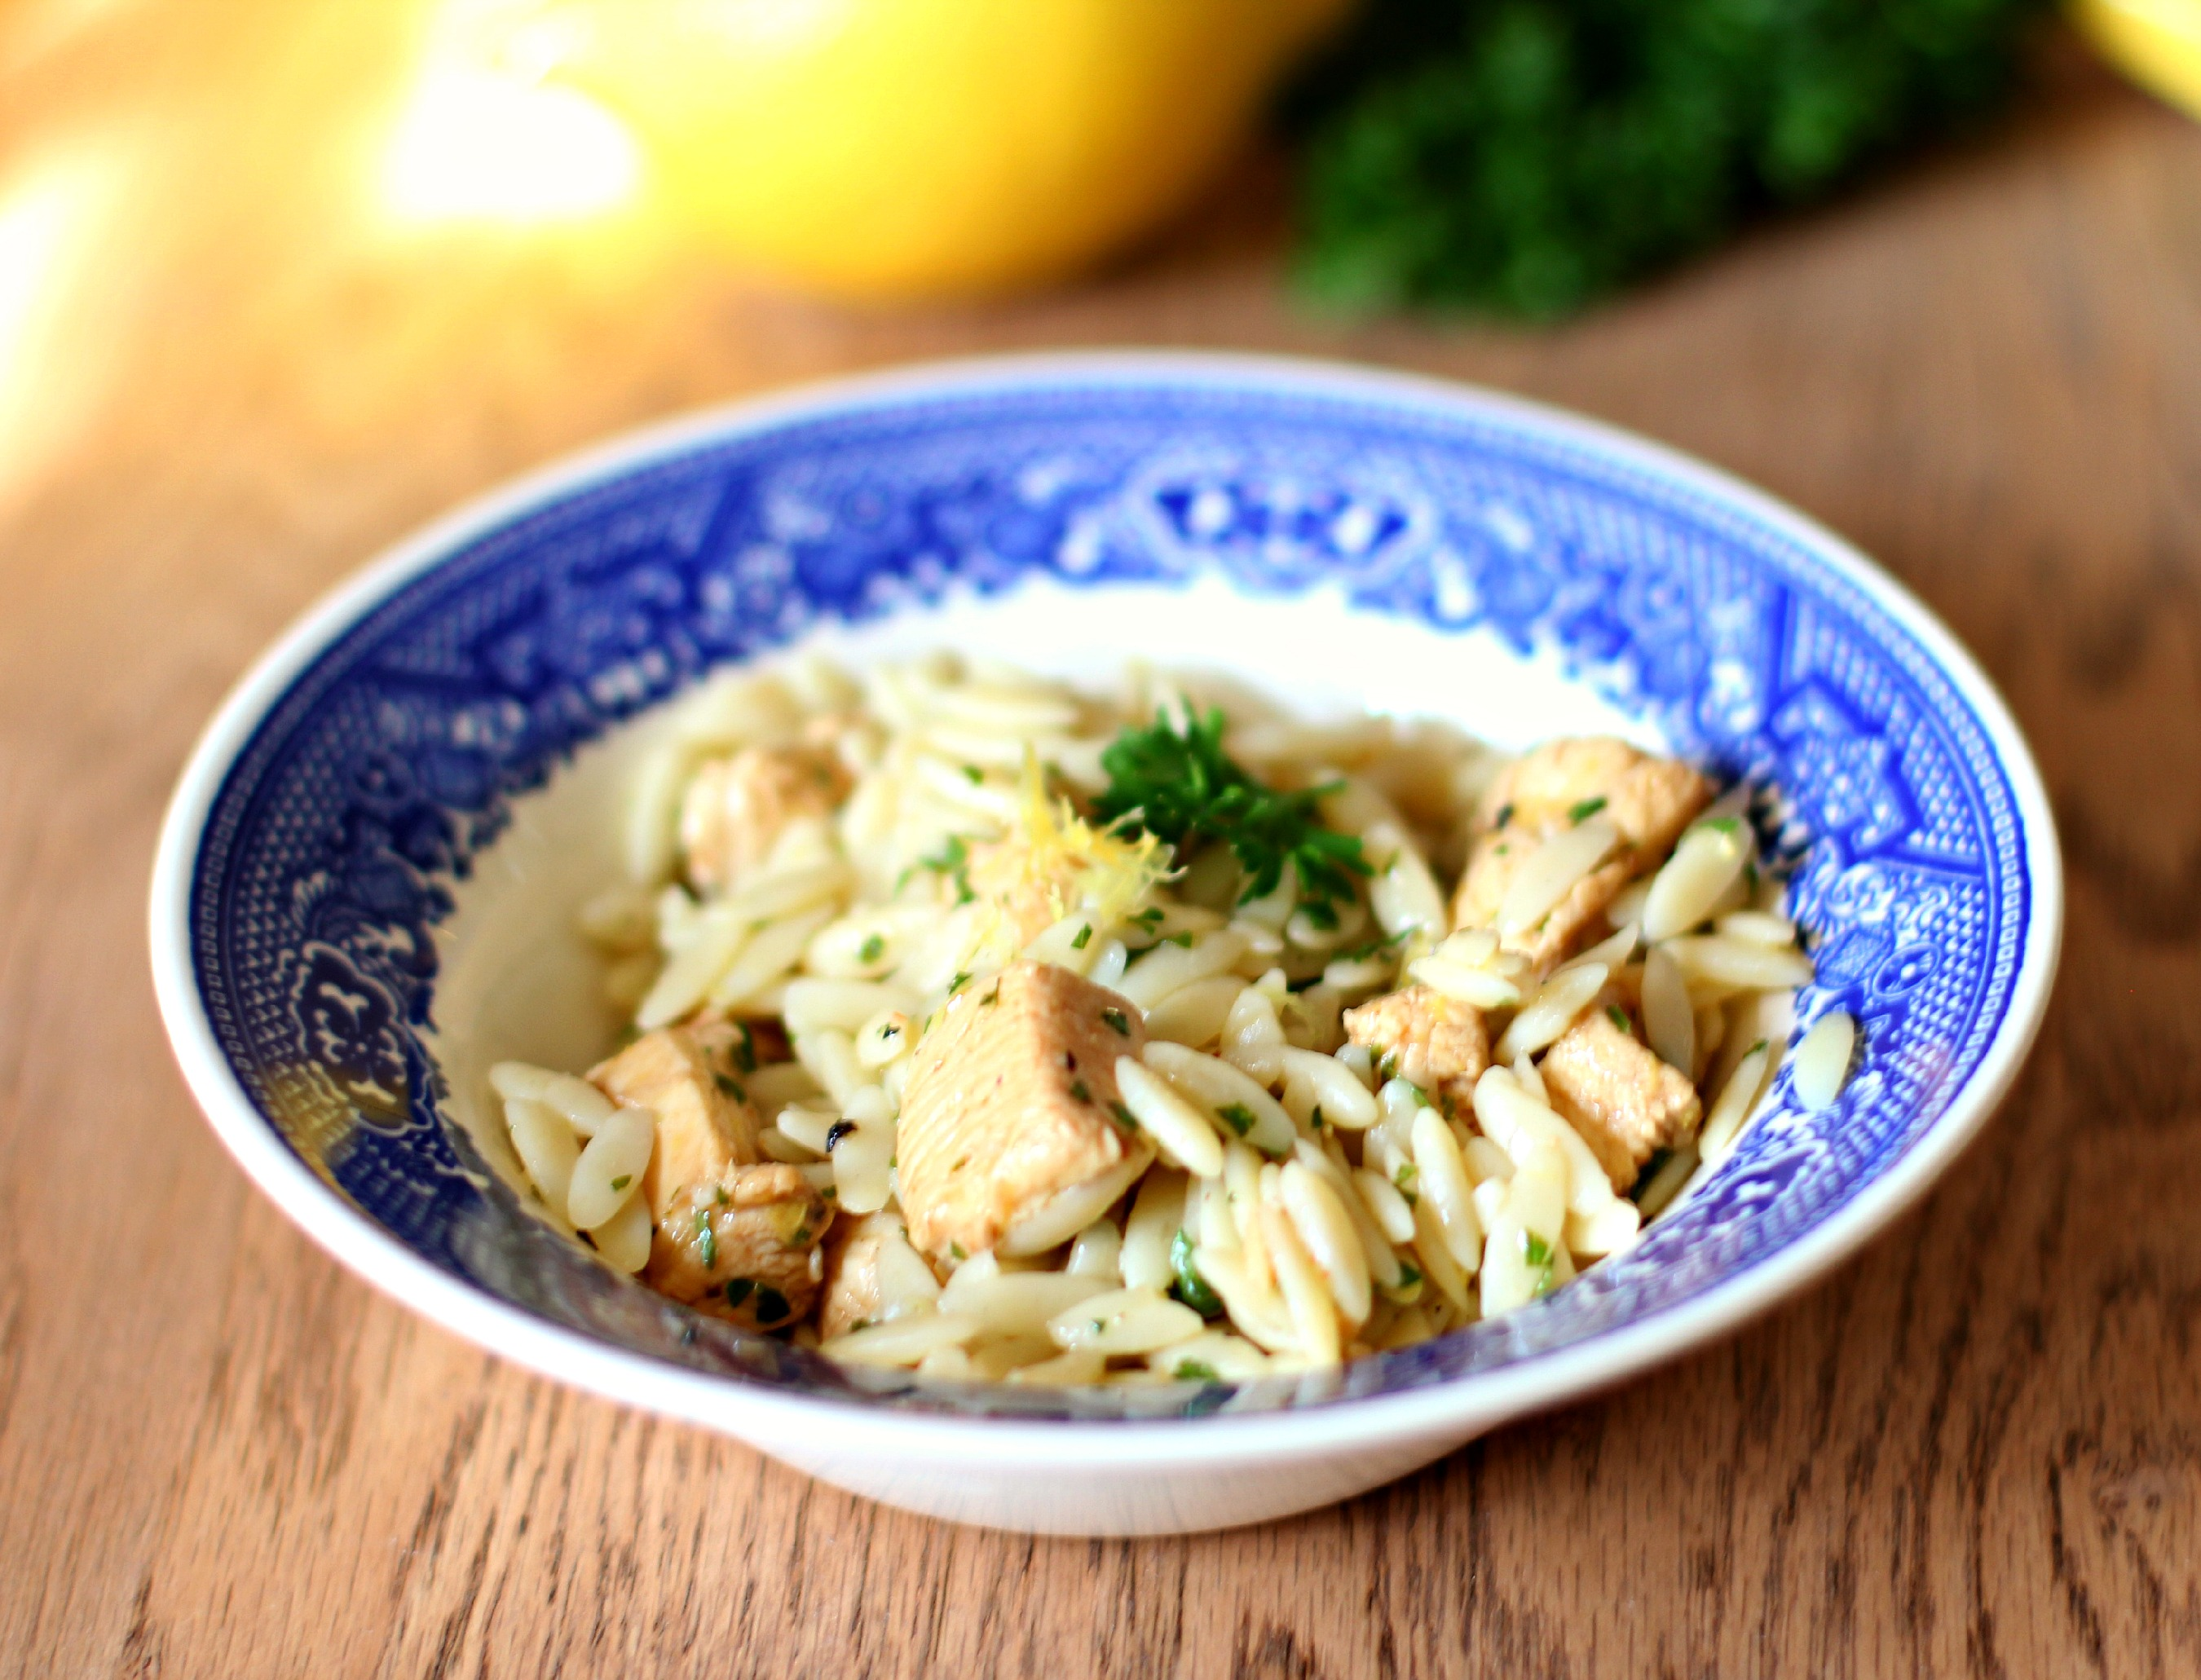 Lemon Orzo with Parsley